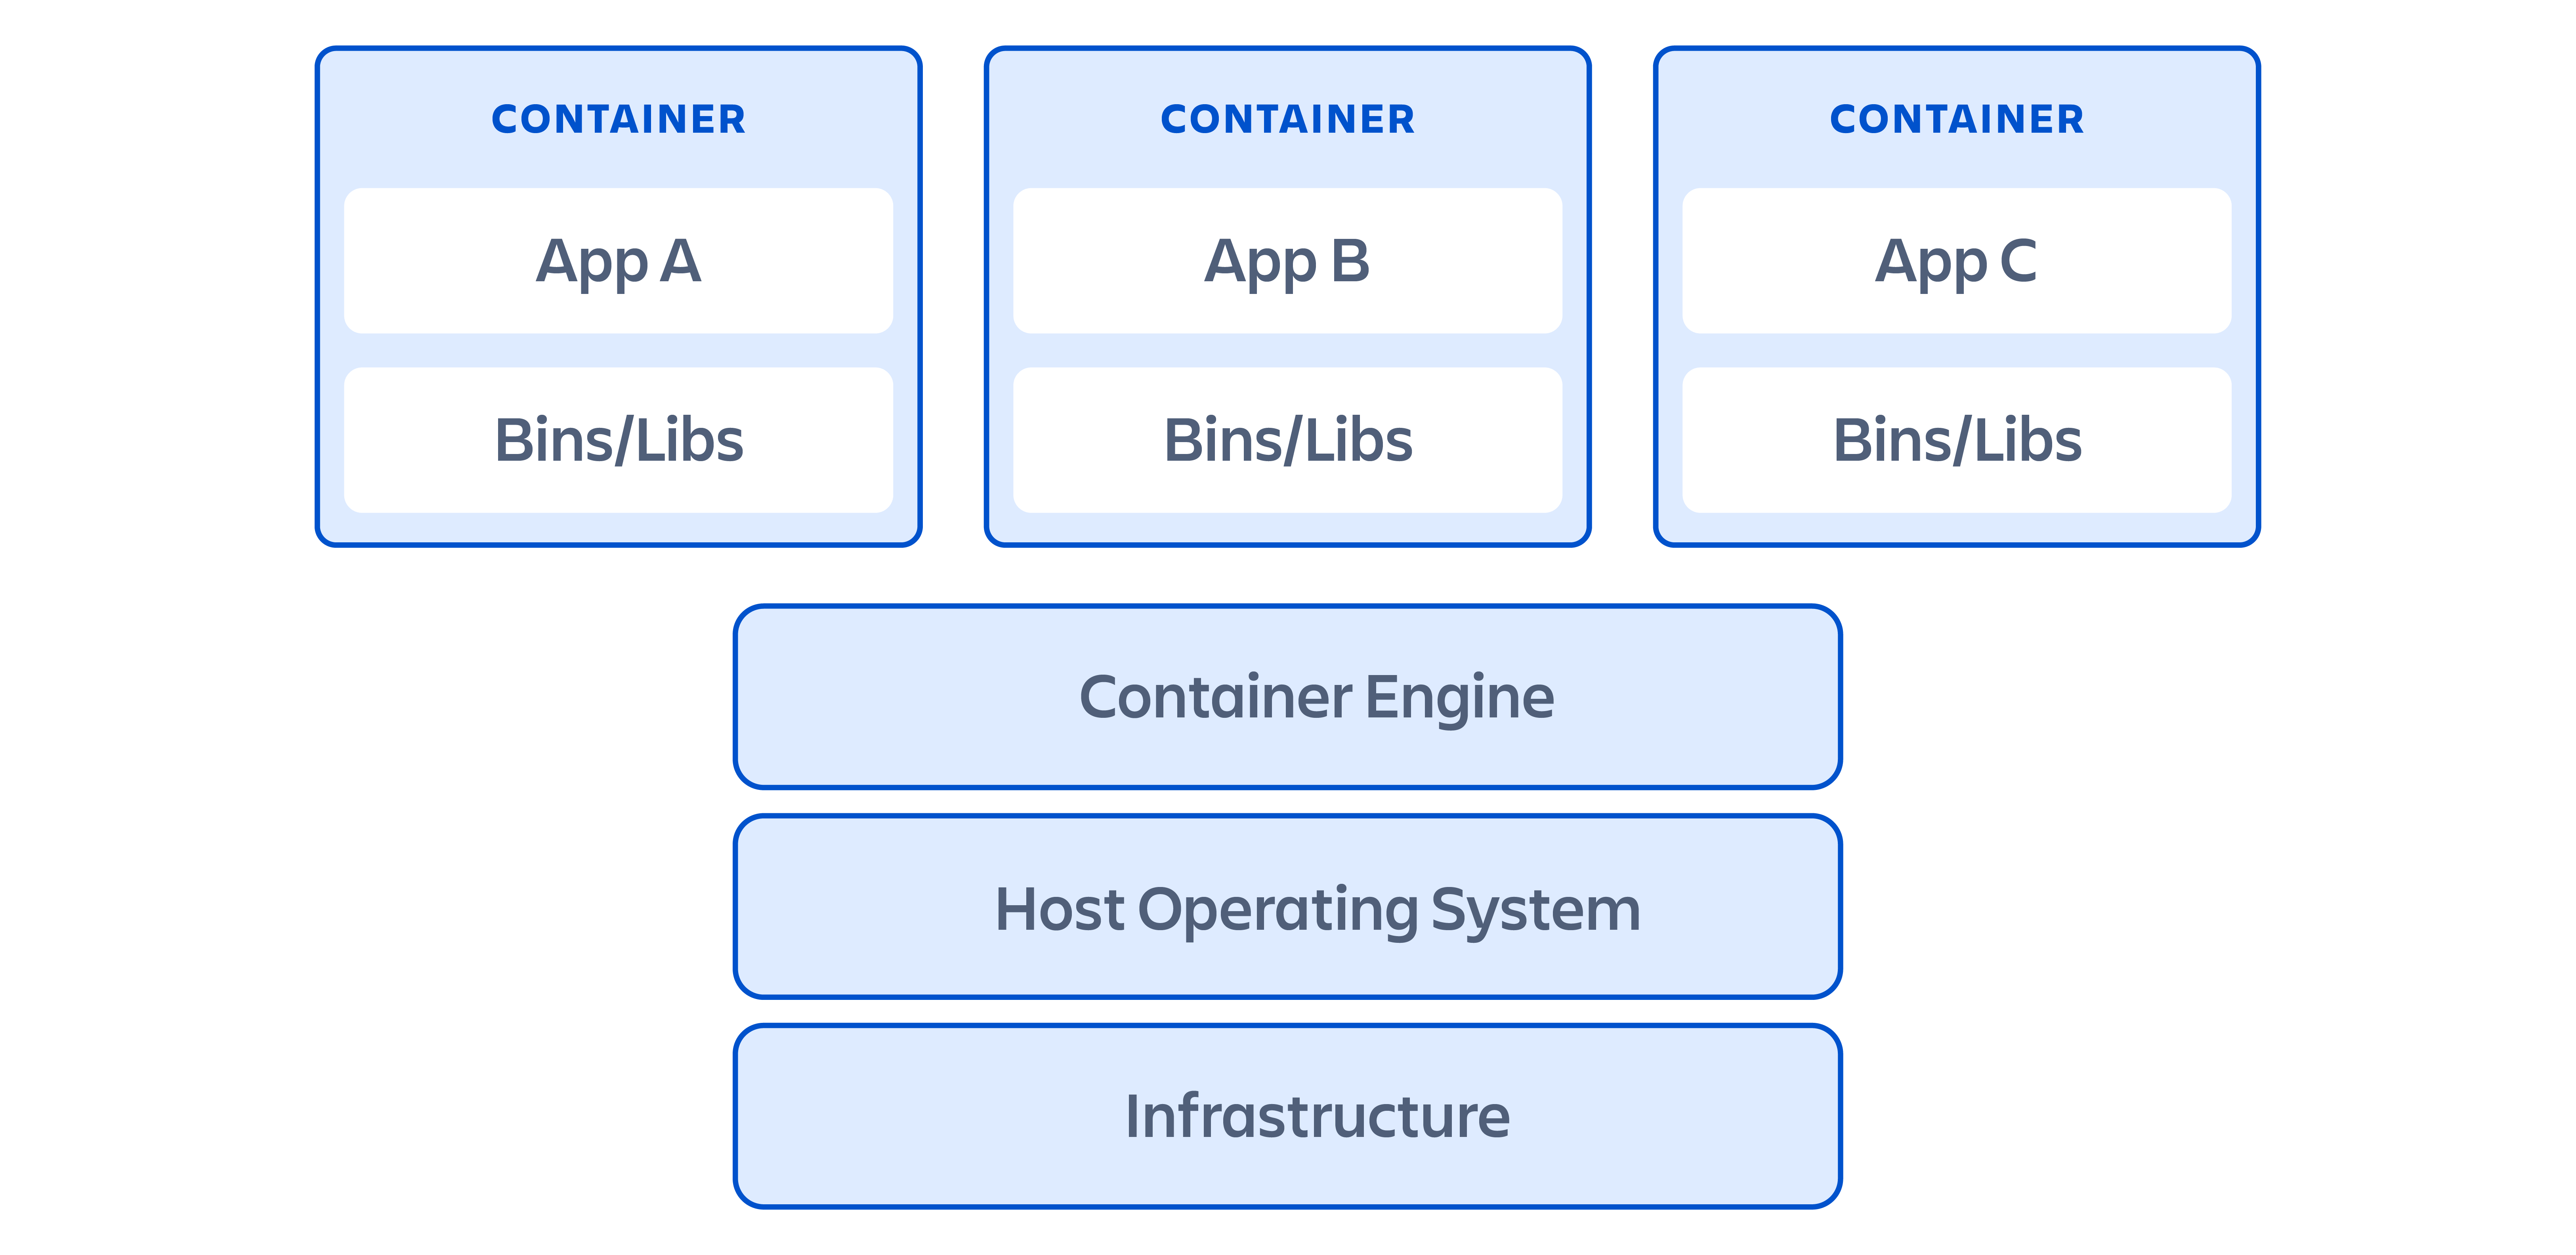 A diagram showing how containers are structured